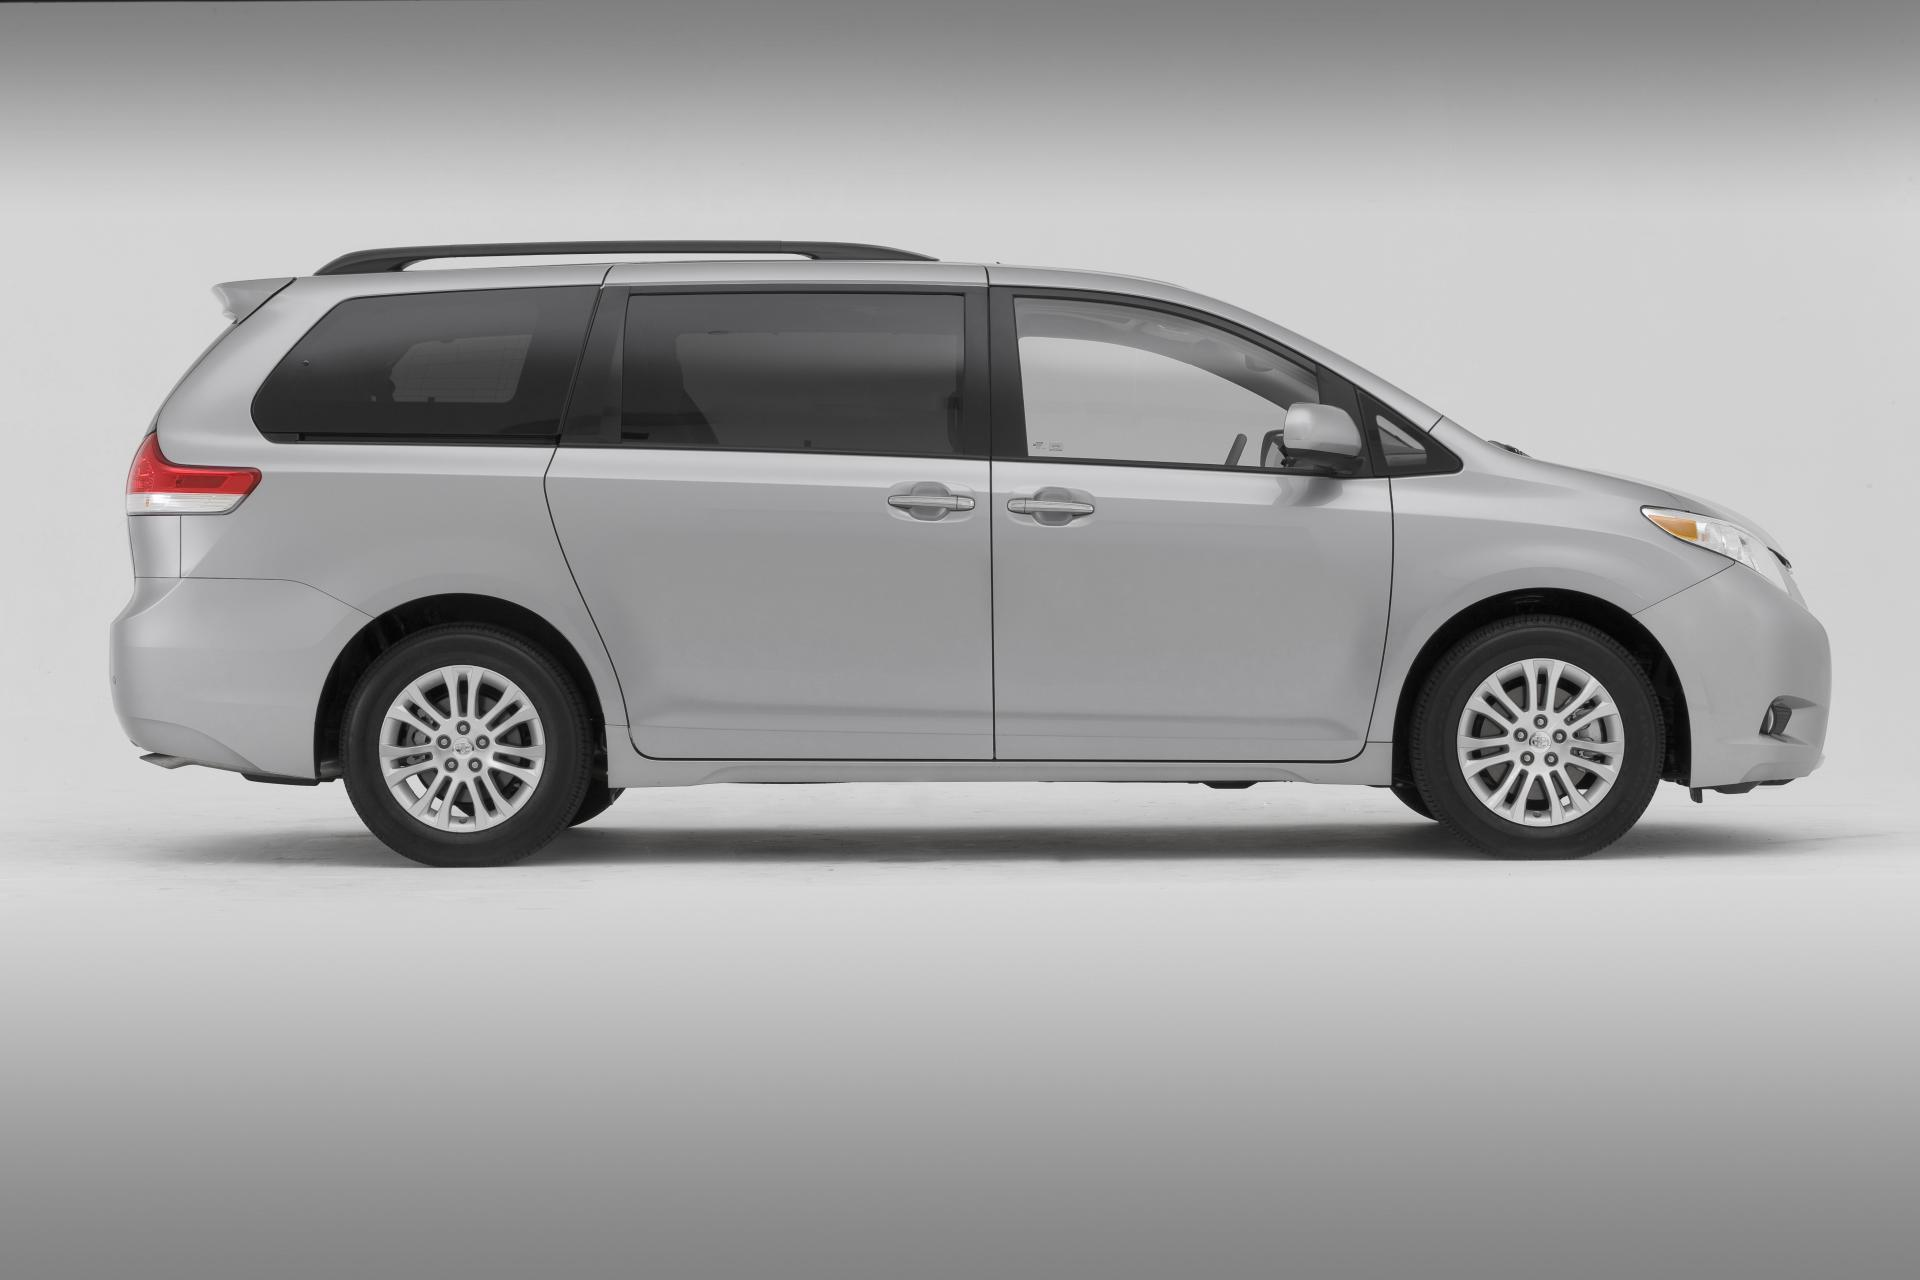 2012 toyota sienna technical specifications and data engine dimensions and mechanical details. Black Bedroom Furniture Sets. Home Design Ideas